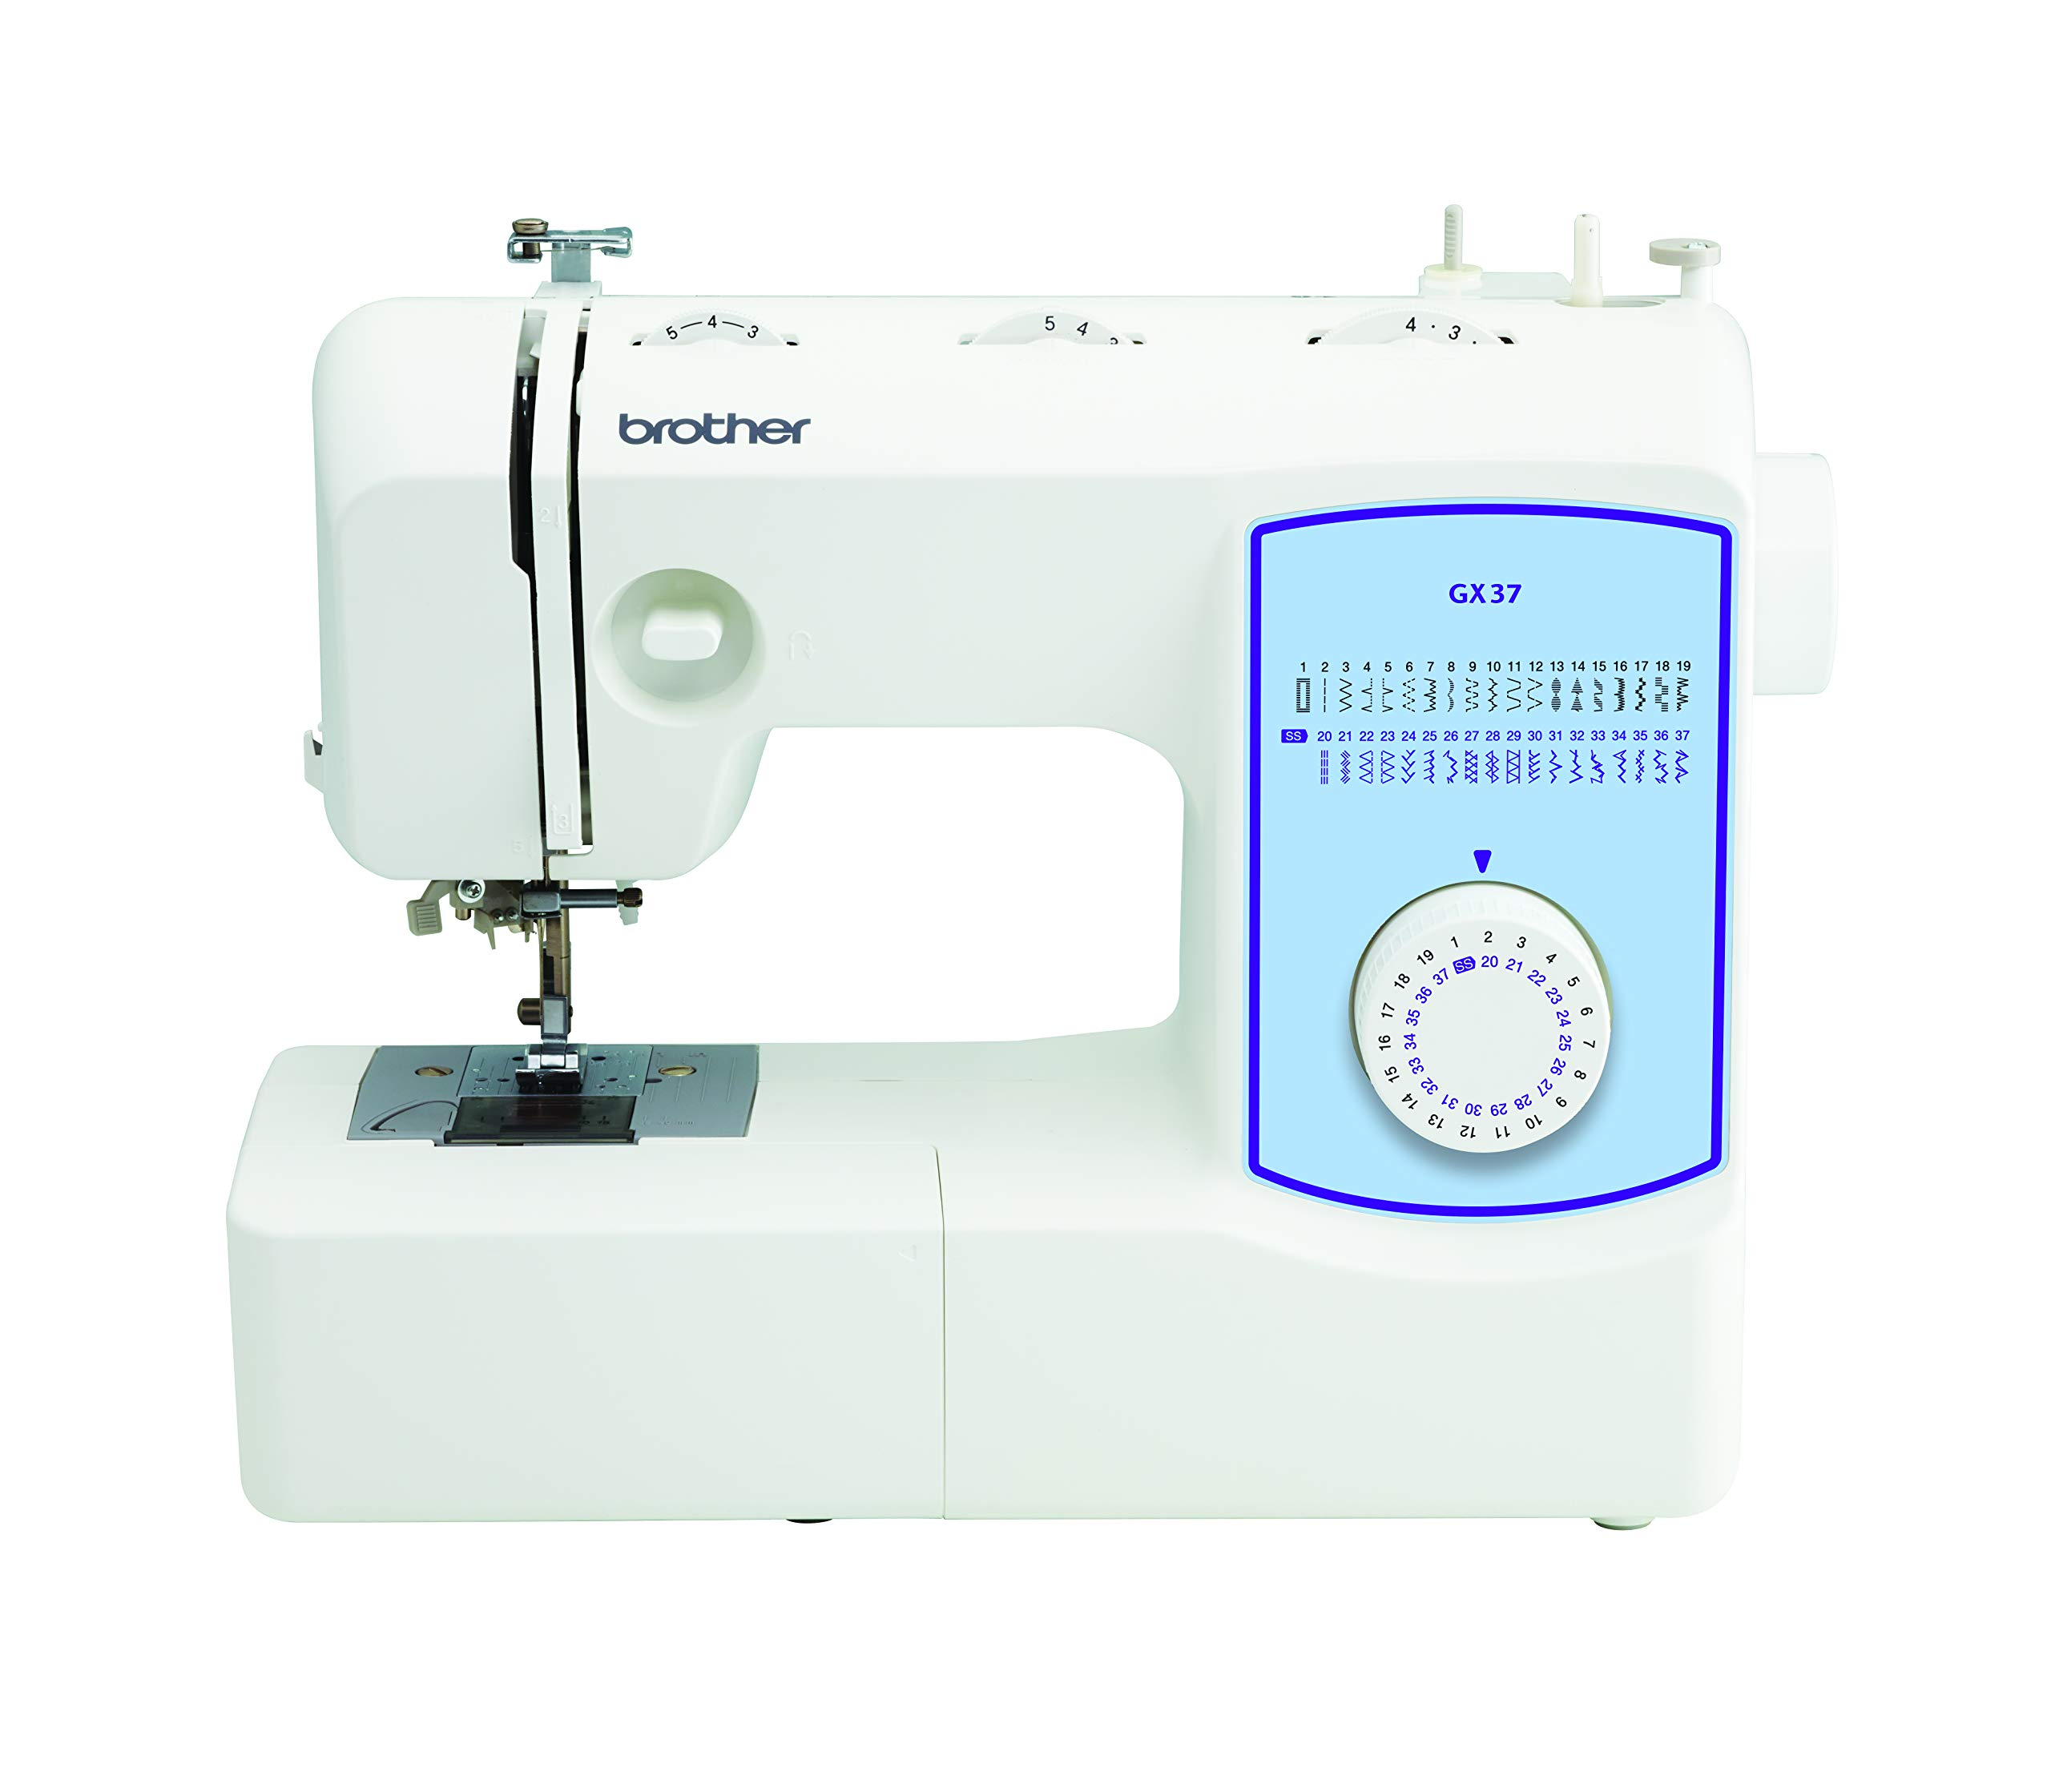 Brother GX37 Lightweight, Full Featured Sewing Machine, White by Brother